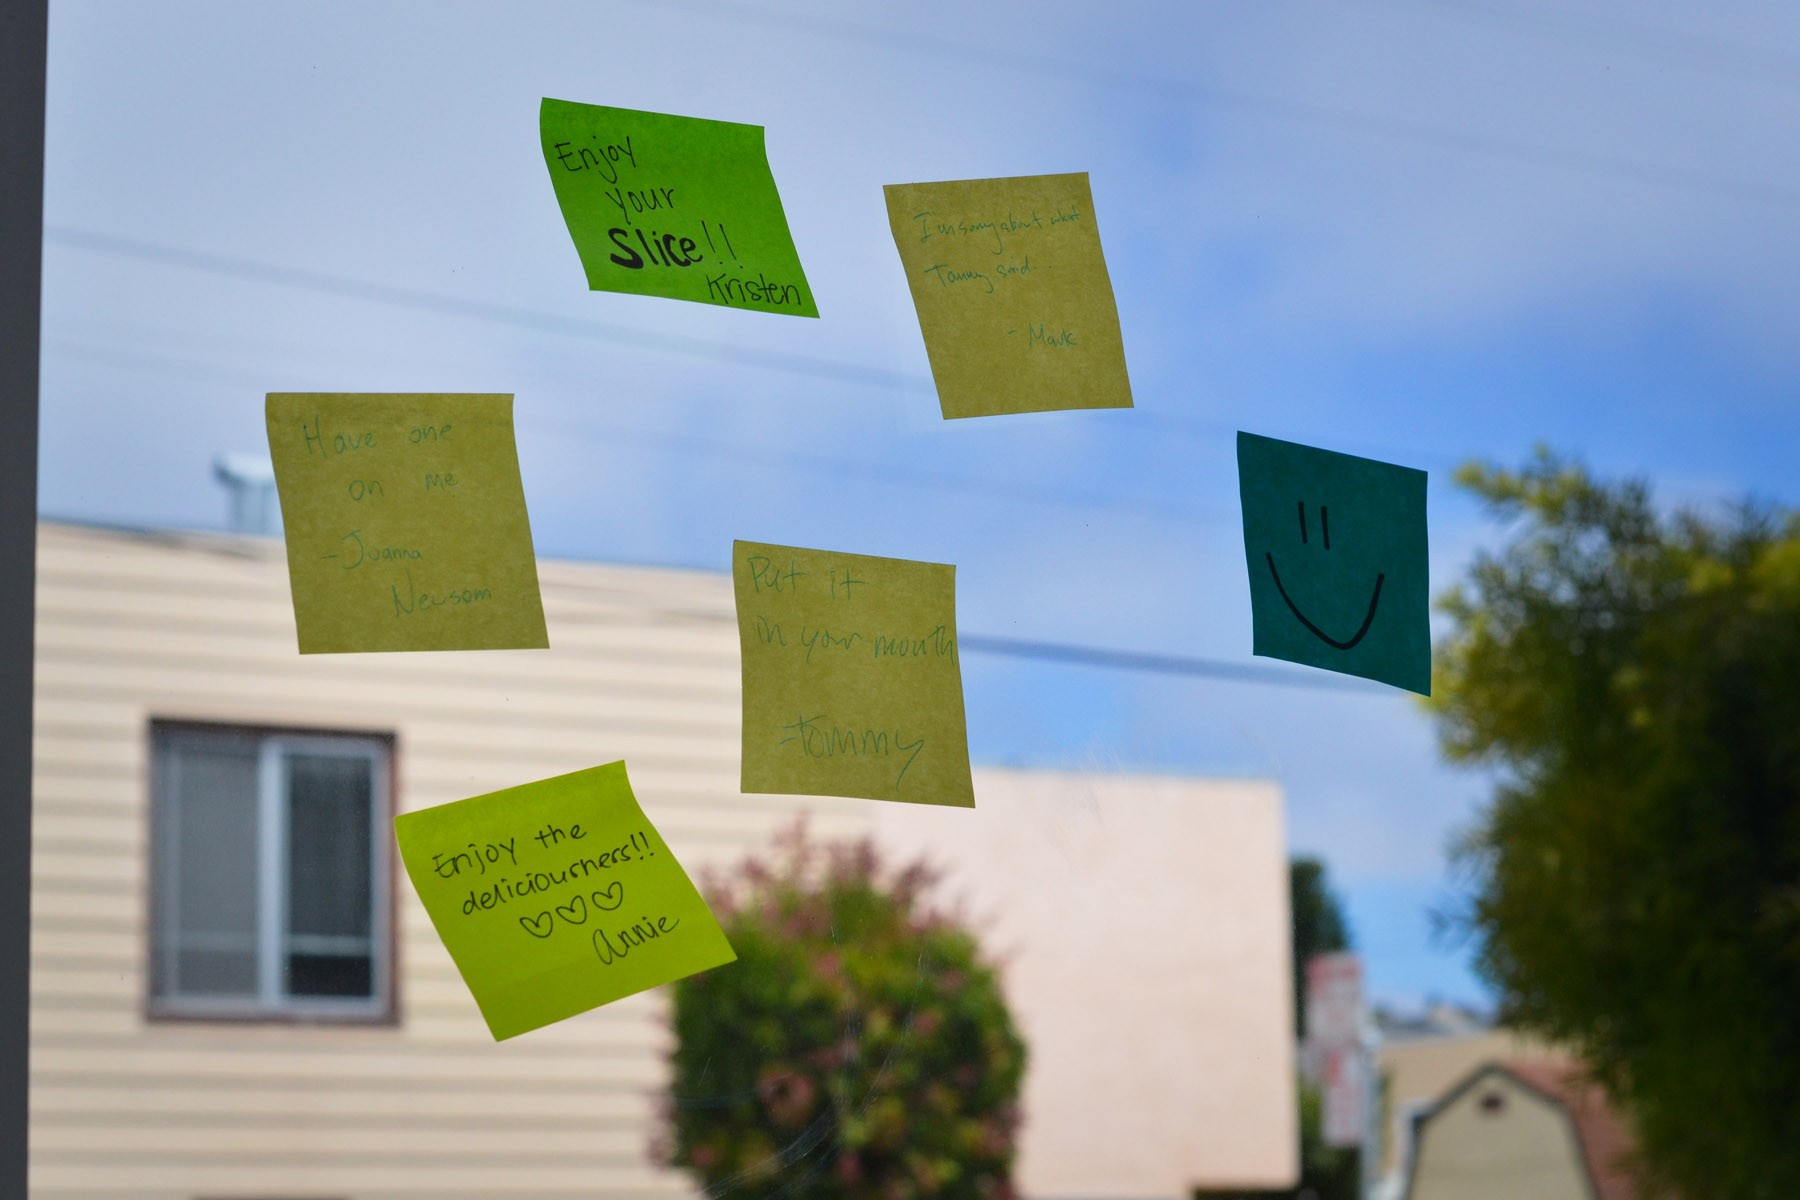 Post-its waiting to be redeemed by Bayview residents.